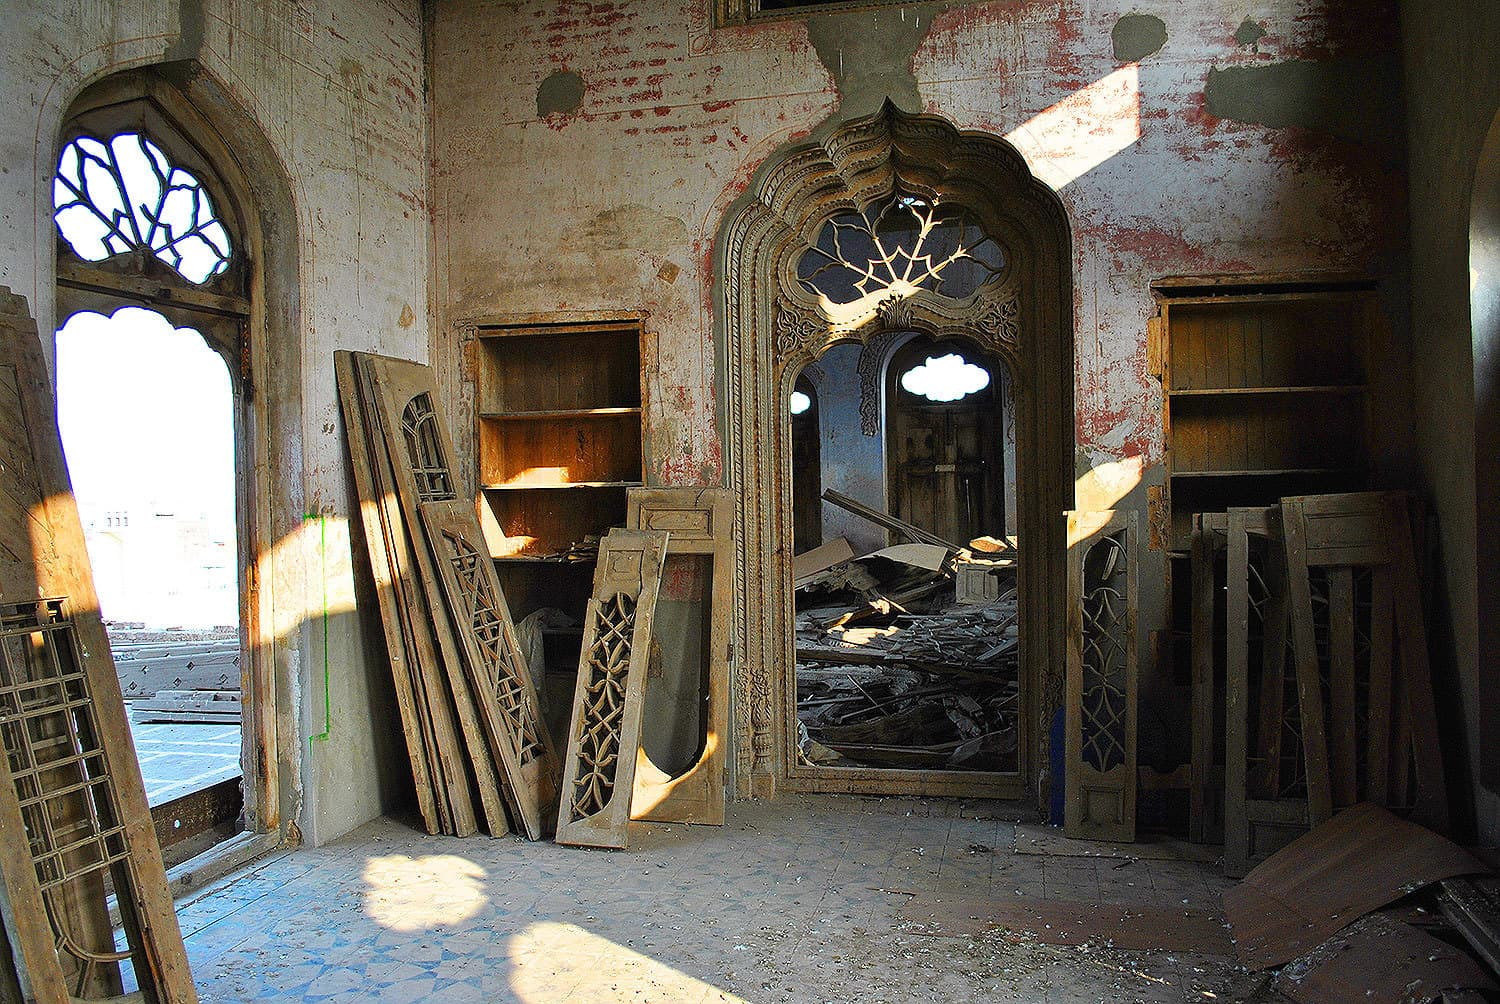 Doors, windows and frescoes were dismantled.